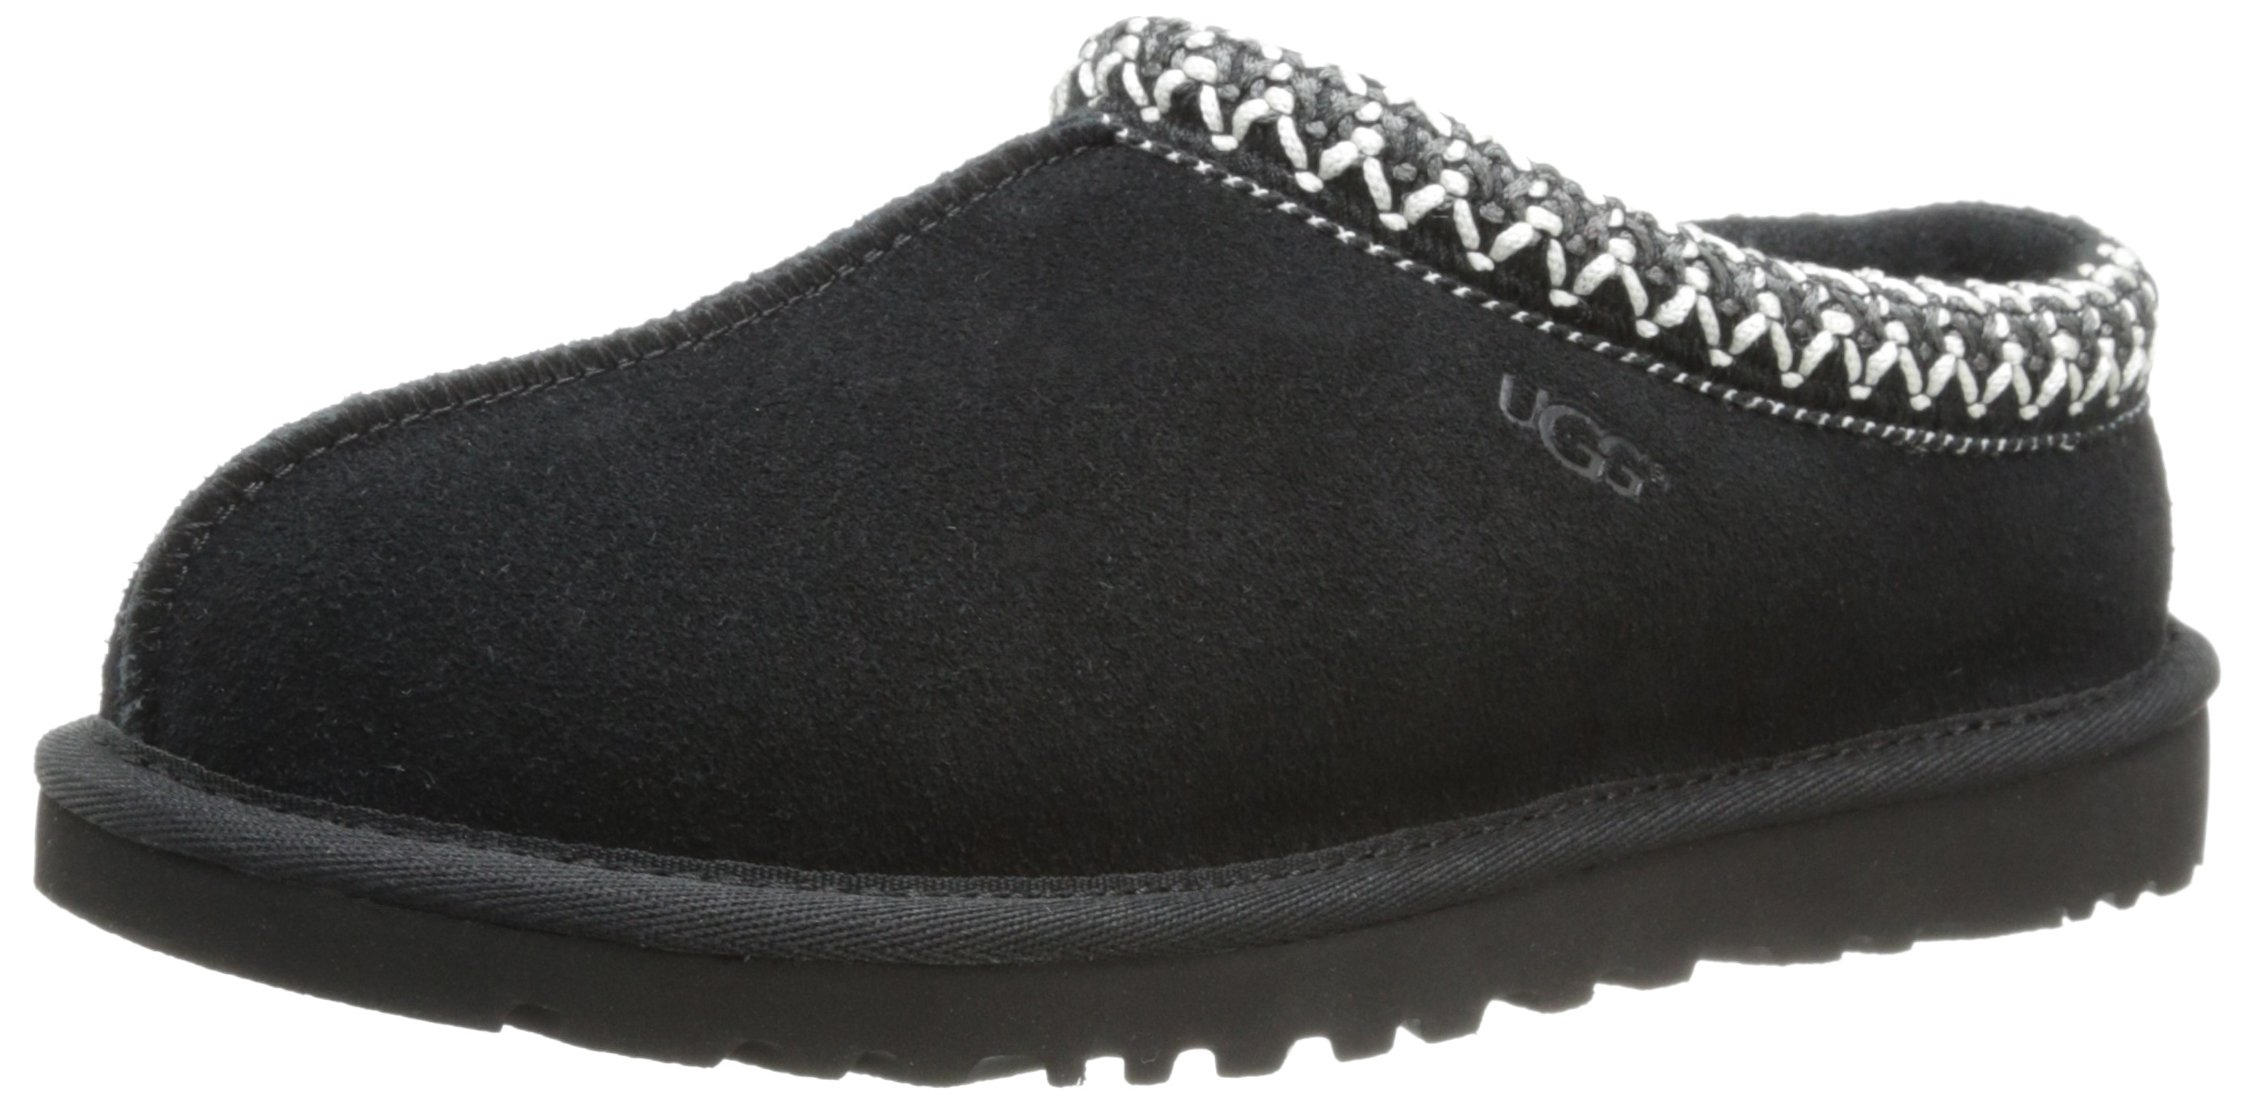 UGG Women's Tasman Slipper, Black, 6 US/6 B US